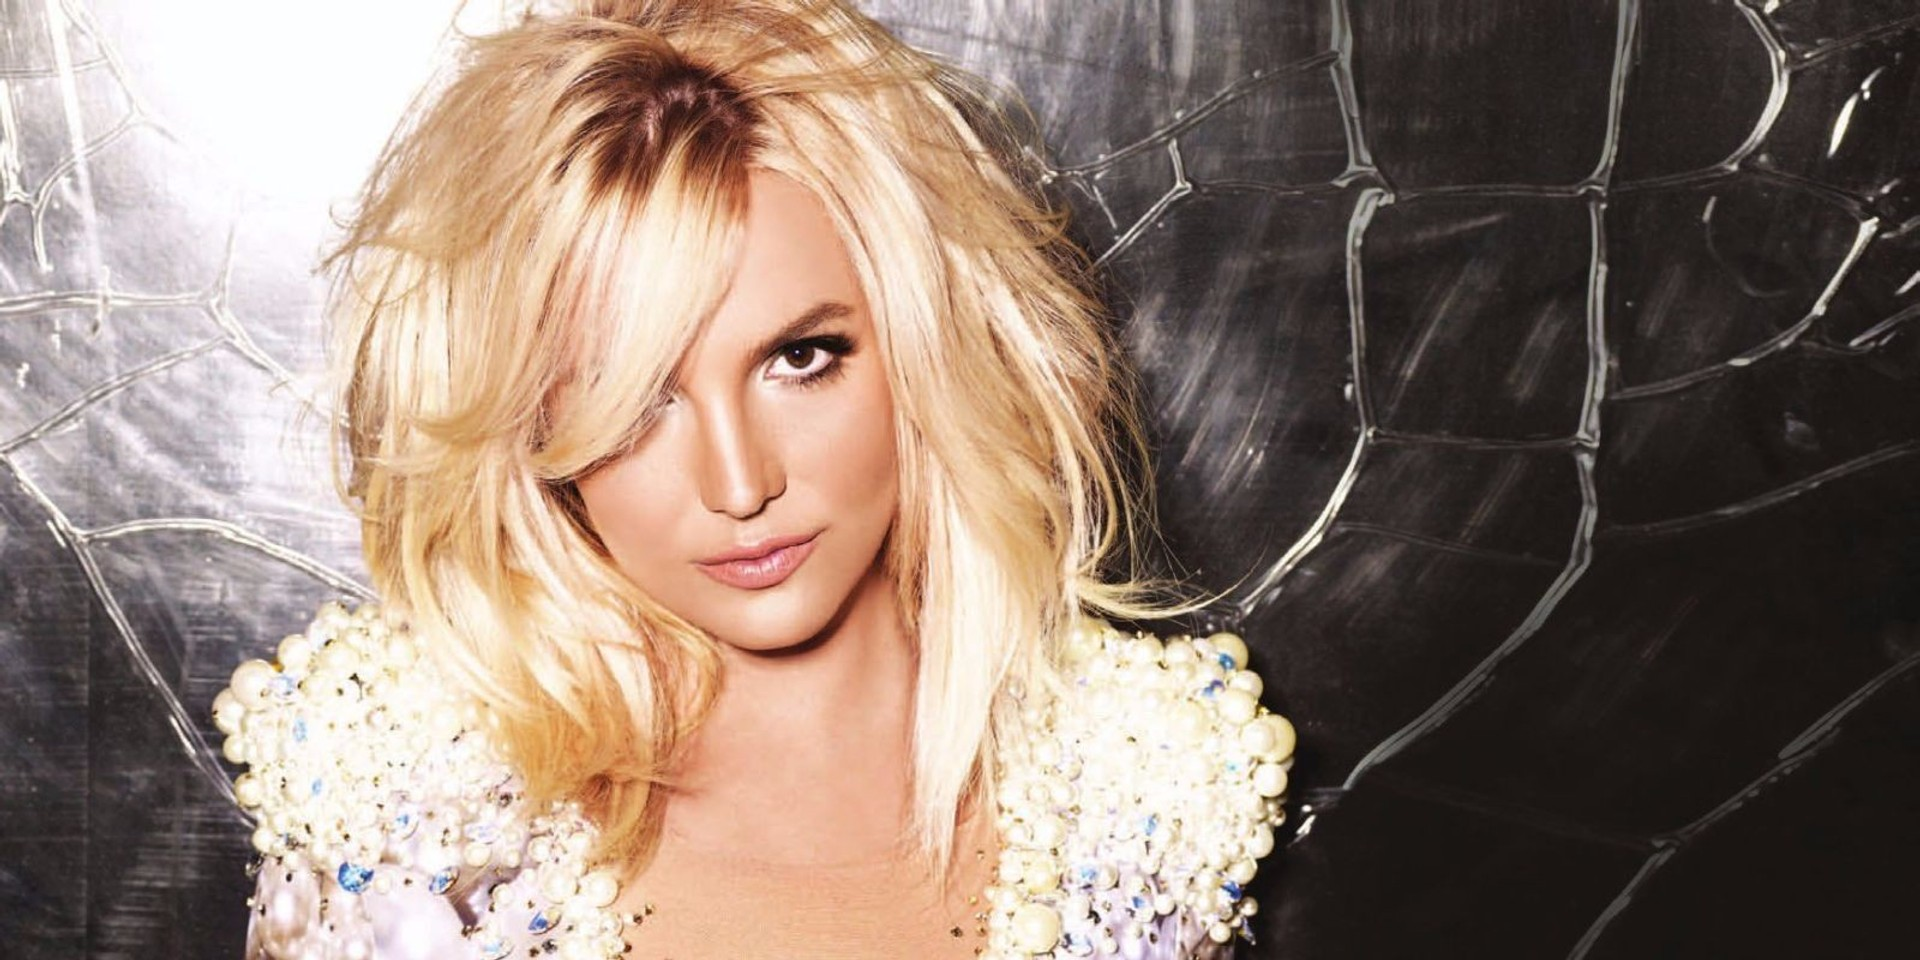 Britney Spears adds Hong Kong to her Asian tour, could Singapore be next?